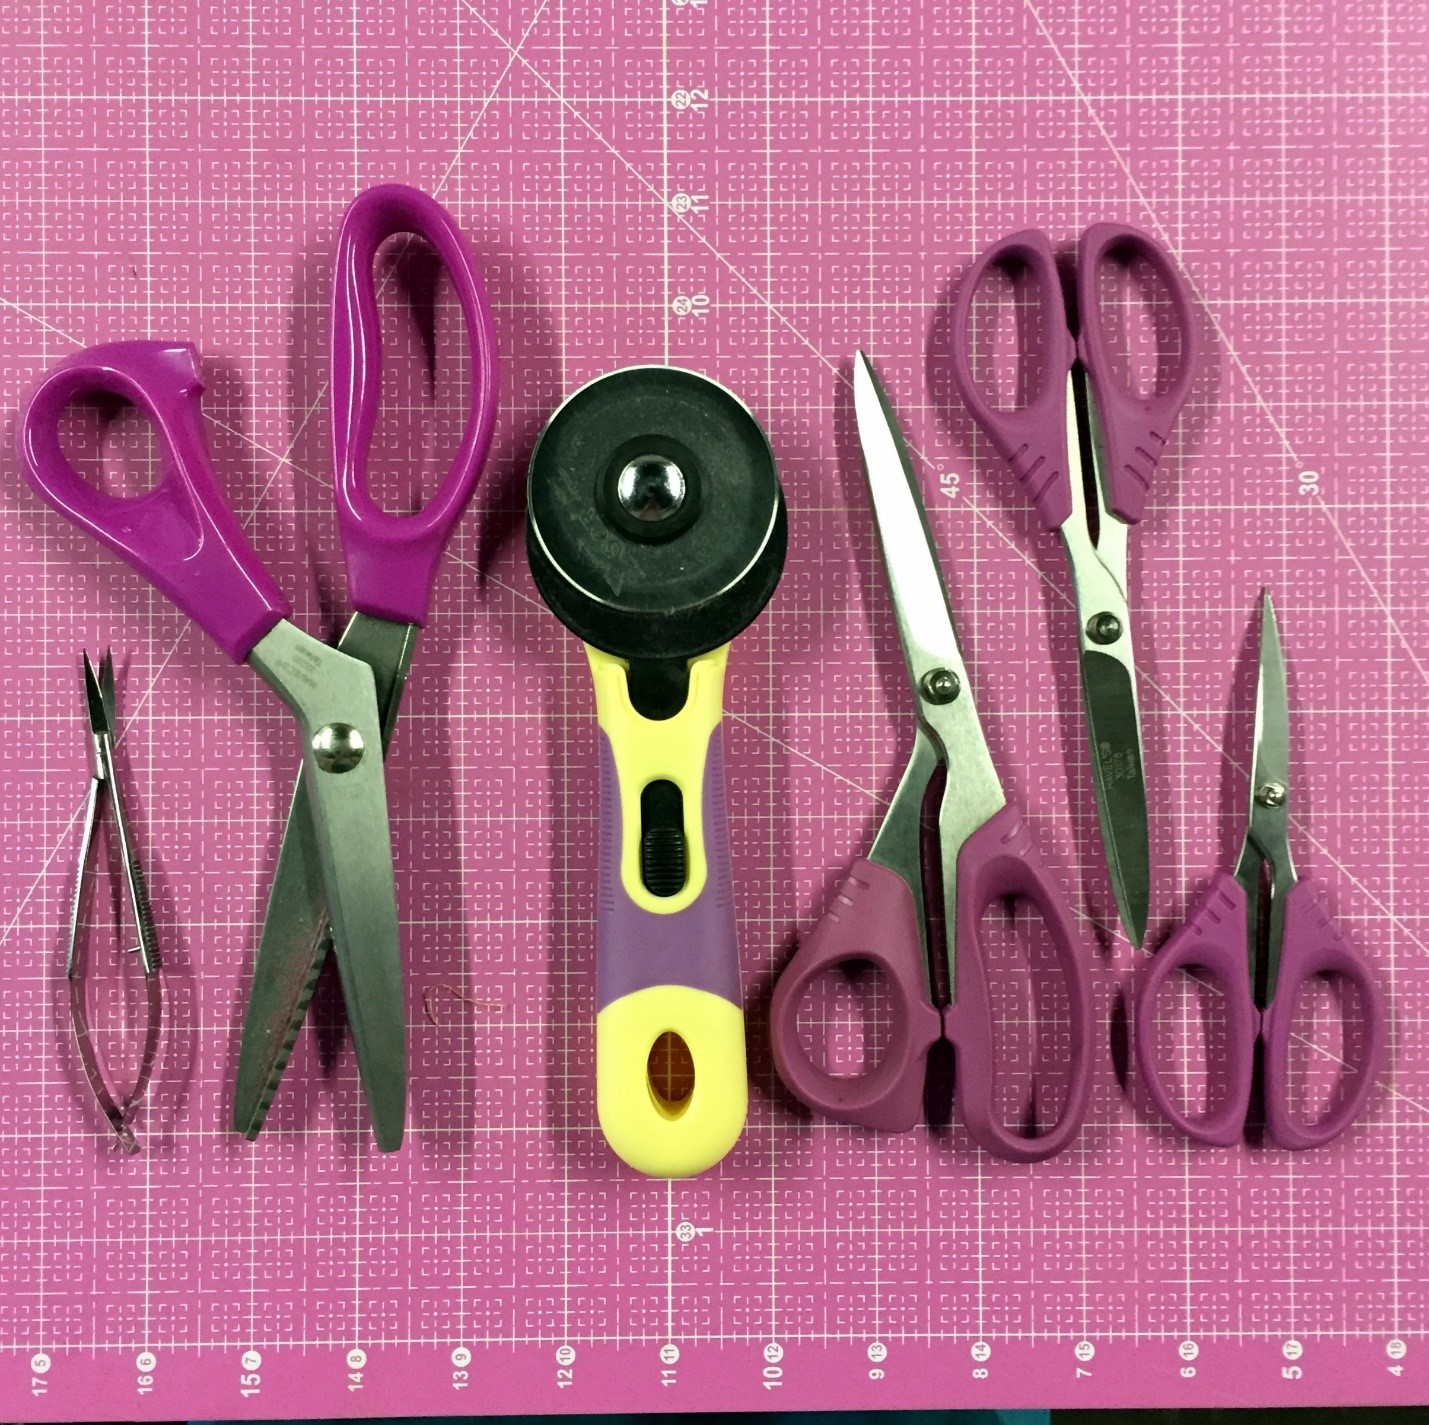 jami-fingal_pinking-shears_image-1